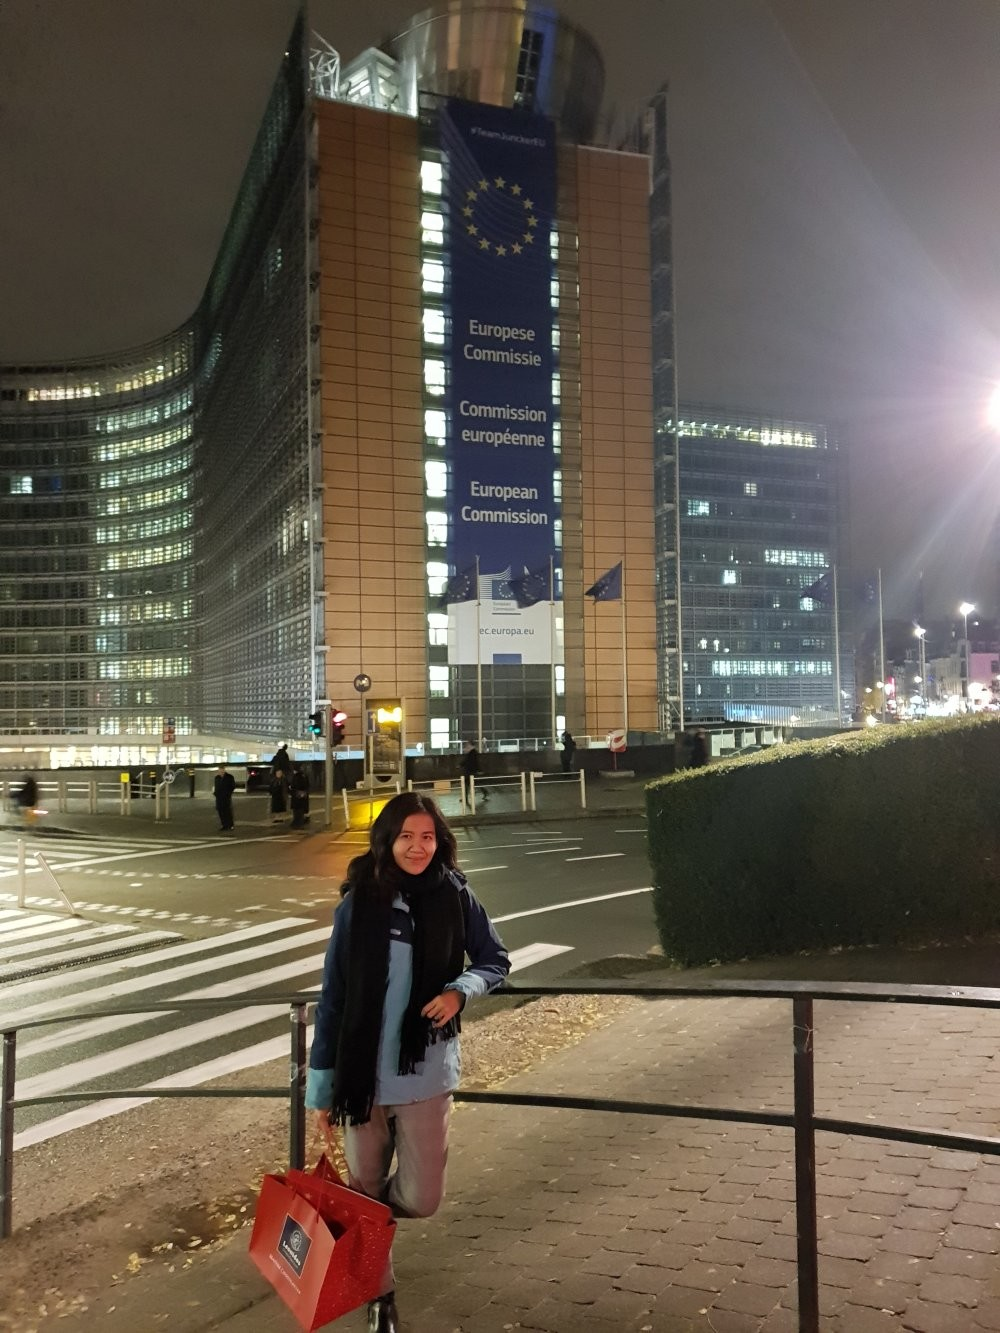 Belgium: Huy, Chapon-Seraing and Brussels